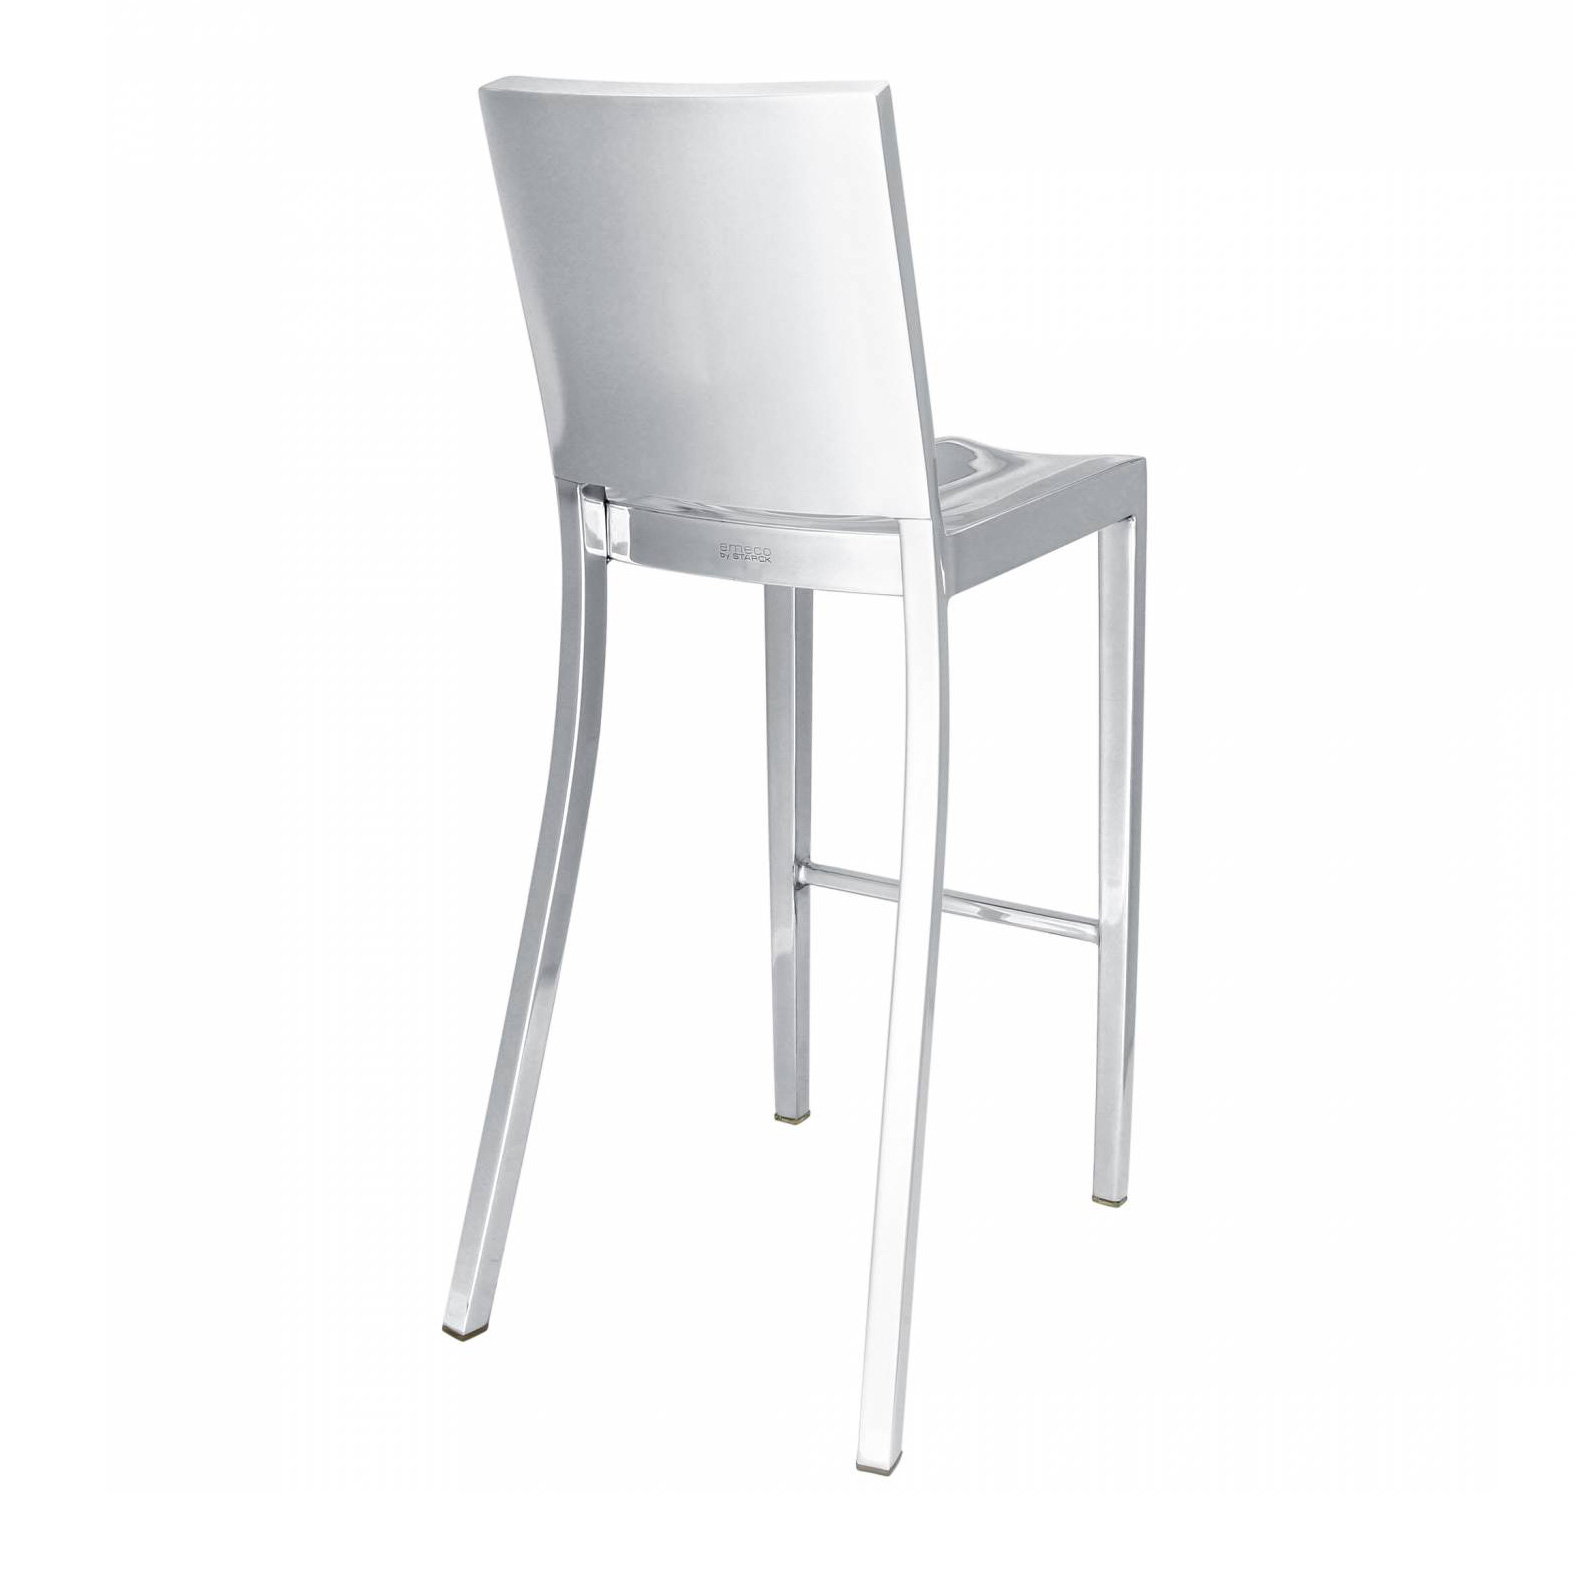 Outstanding Emeco Hudson Bar Stool Aluminium Polished By Philippe Starck Caraccident5 Cool Chair Designs And Ideas Caraccident5Info